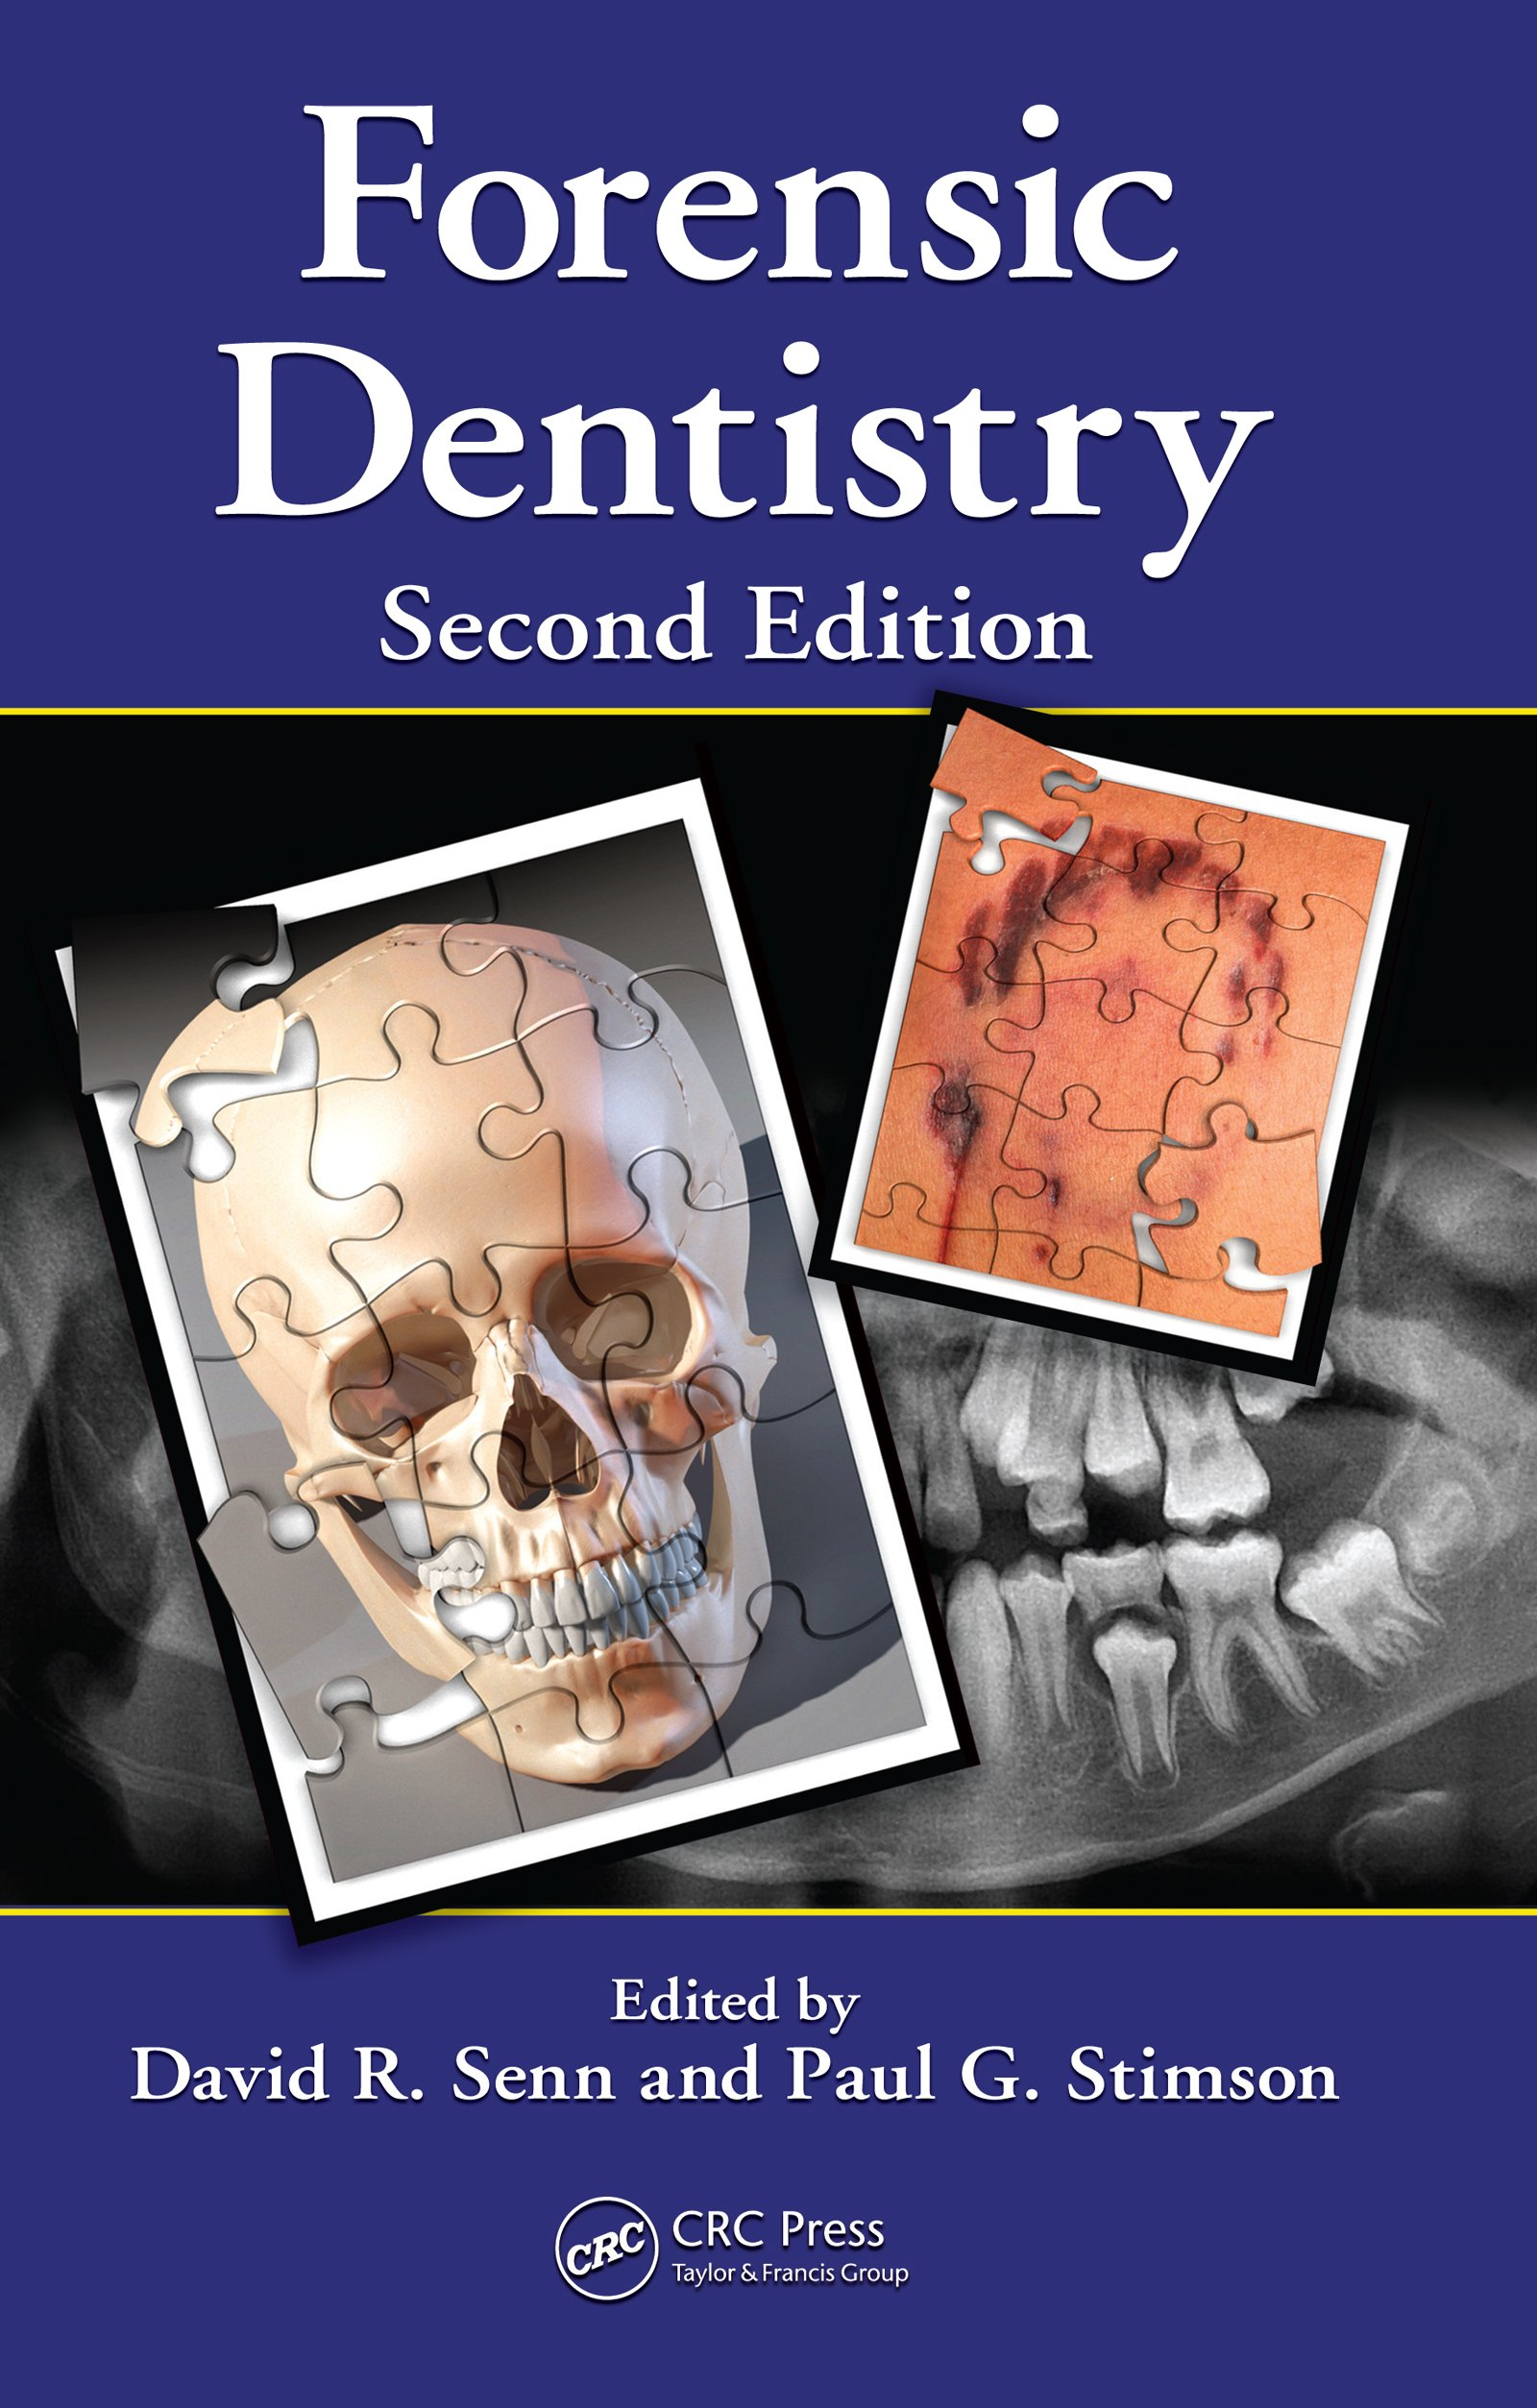 Forensic Dentistry Kindle Edition By Senn David R Stimson Paul G Politics Social Sciences Kindle Ebooks Amazon Com